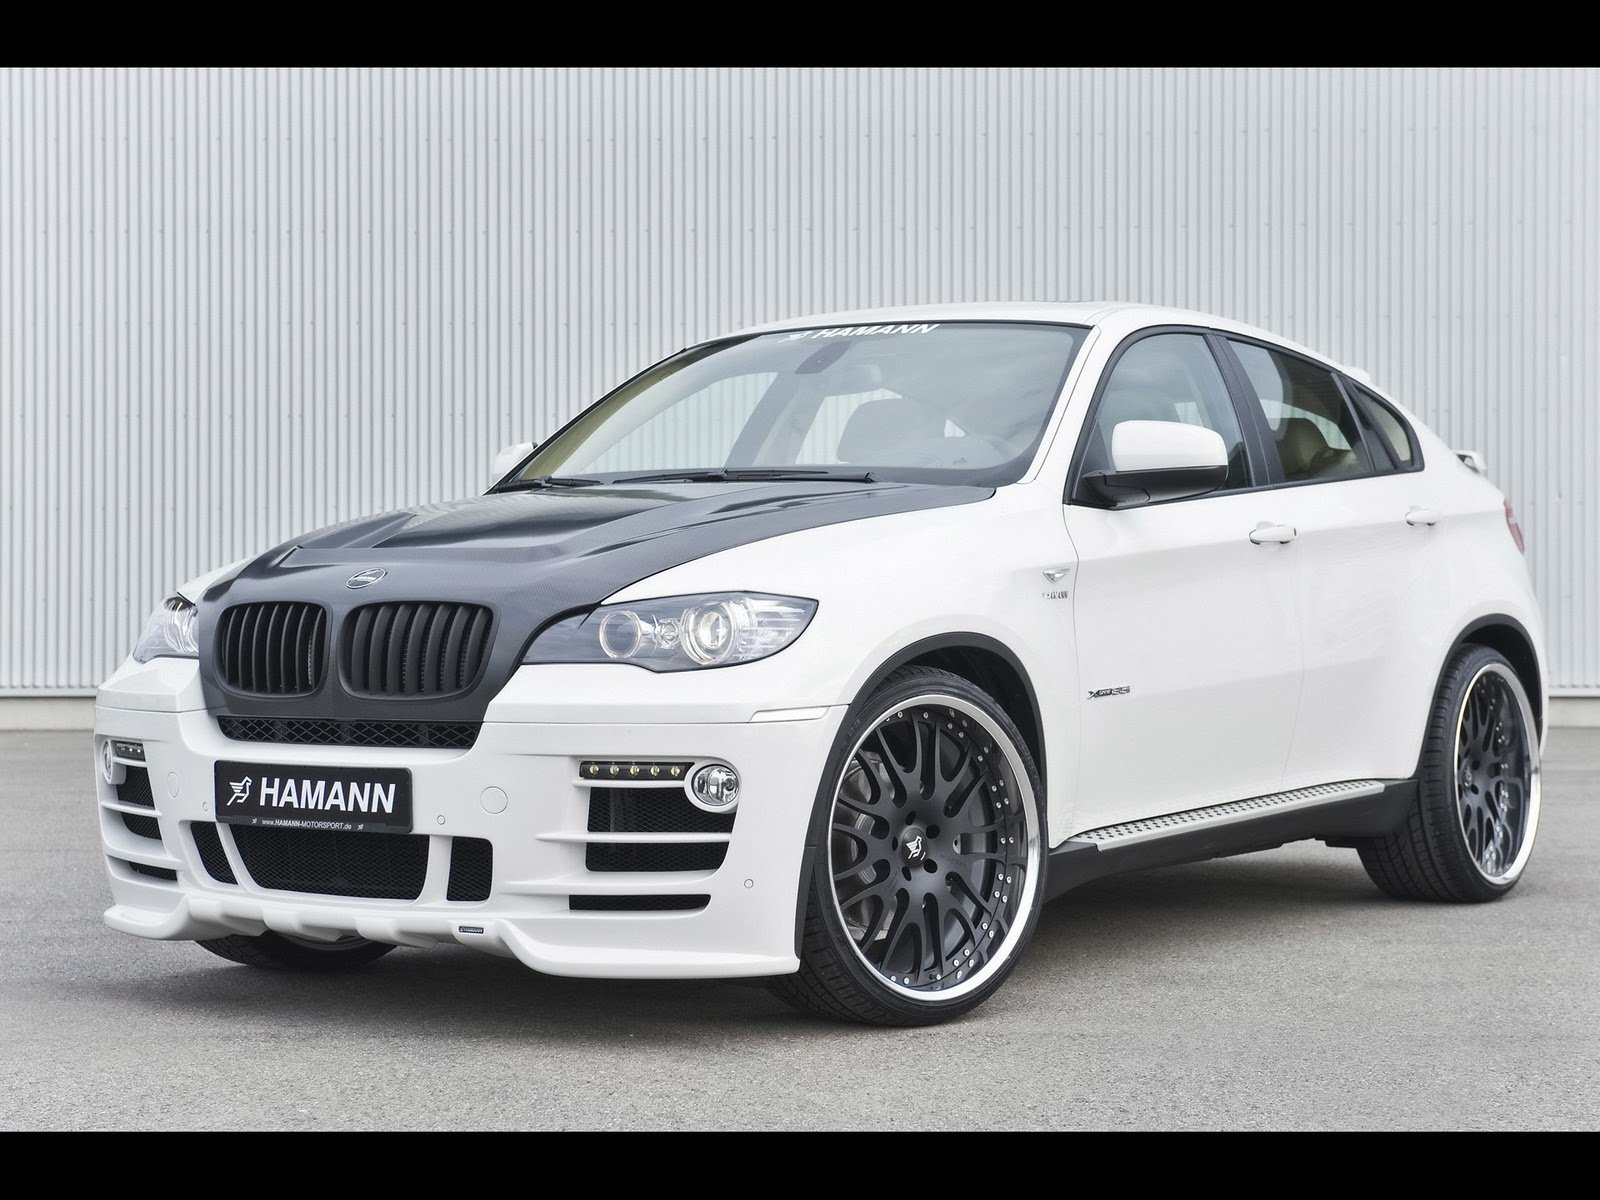 Latest Cars Hd Wallpapers 2009 Hamann Bmw X6 Free Download